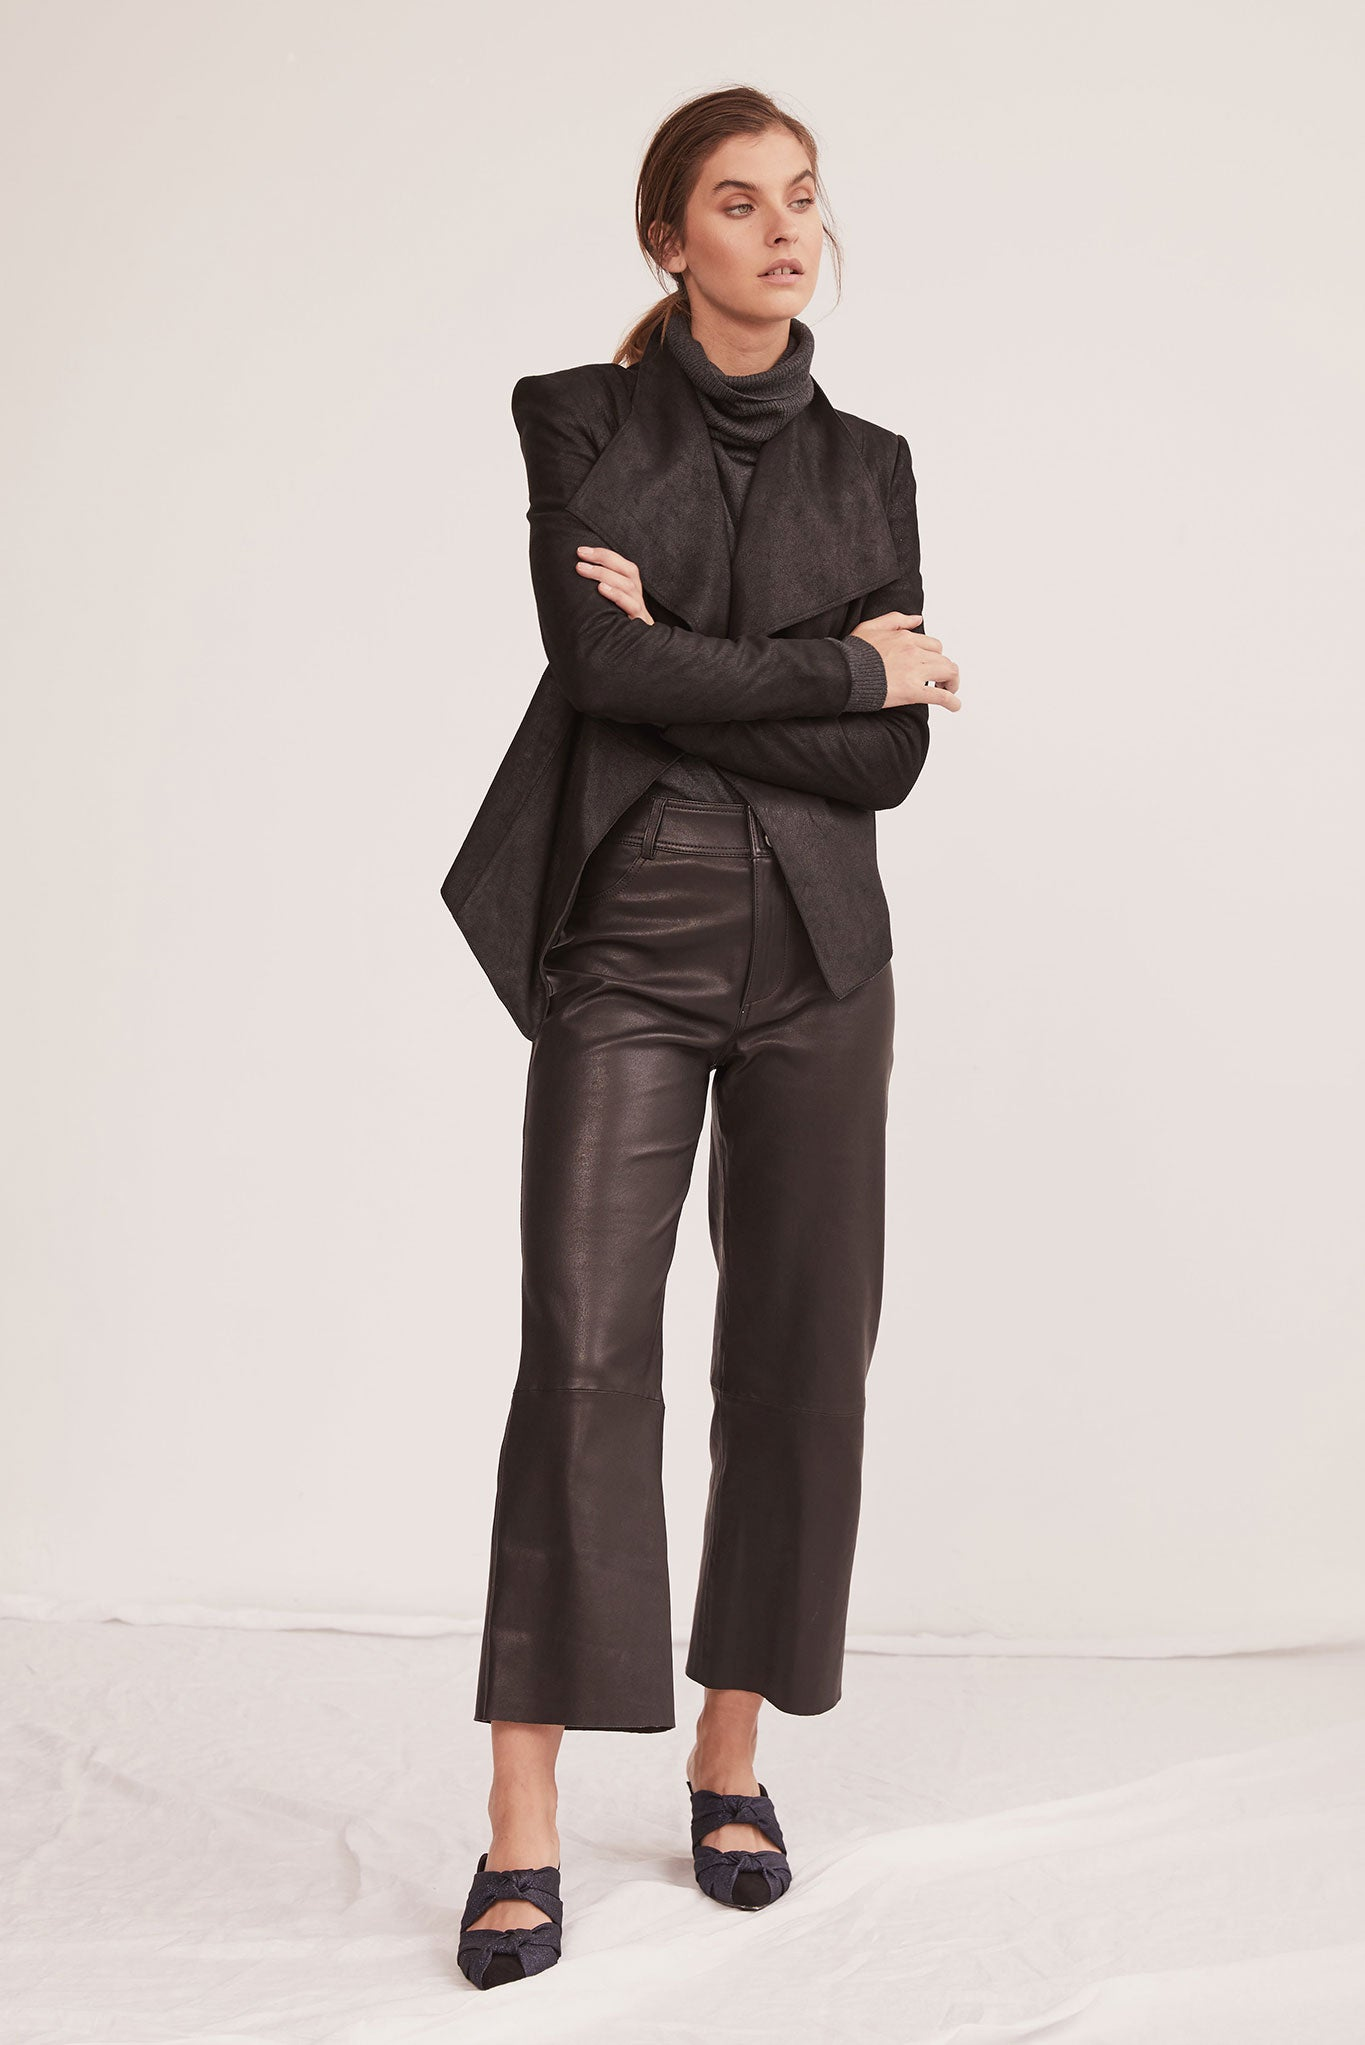 094d4fabc1dd The-Prospect-Pant-Black-Stretch-Leather-High-Rise-Wide-Leg-Cropped ...